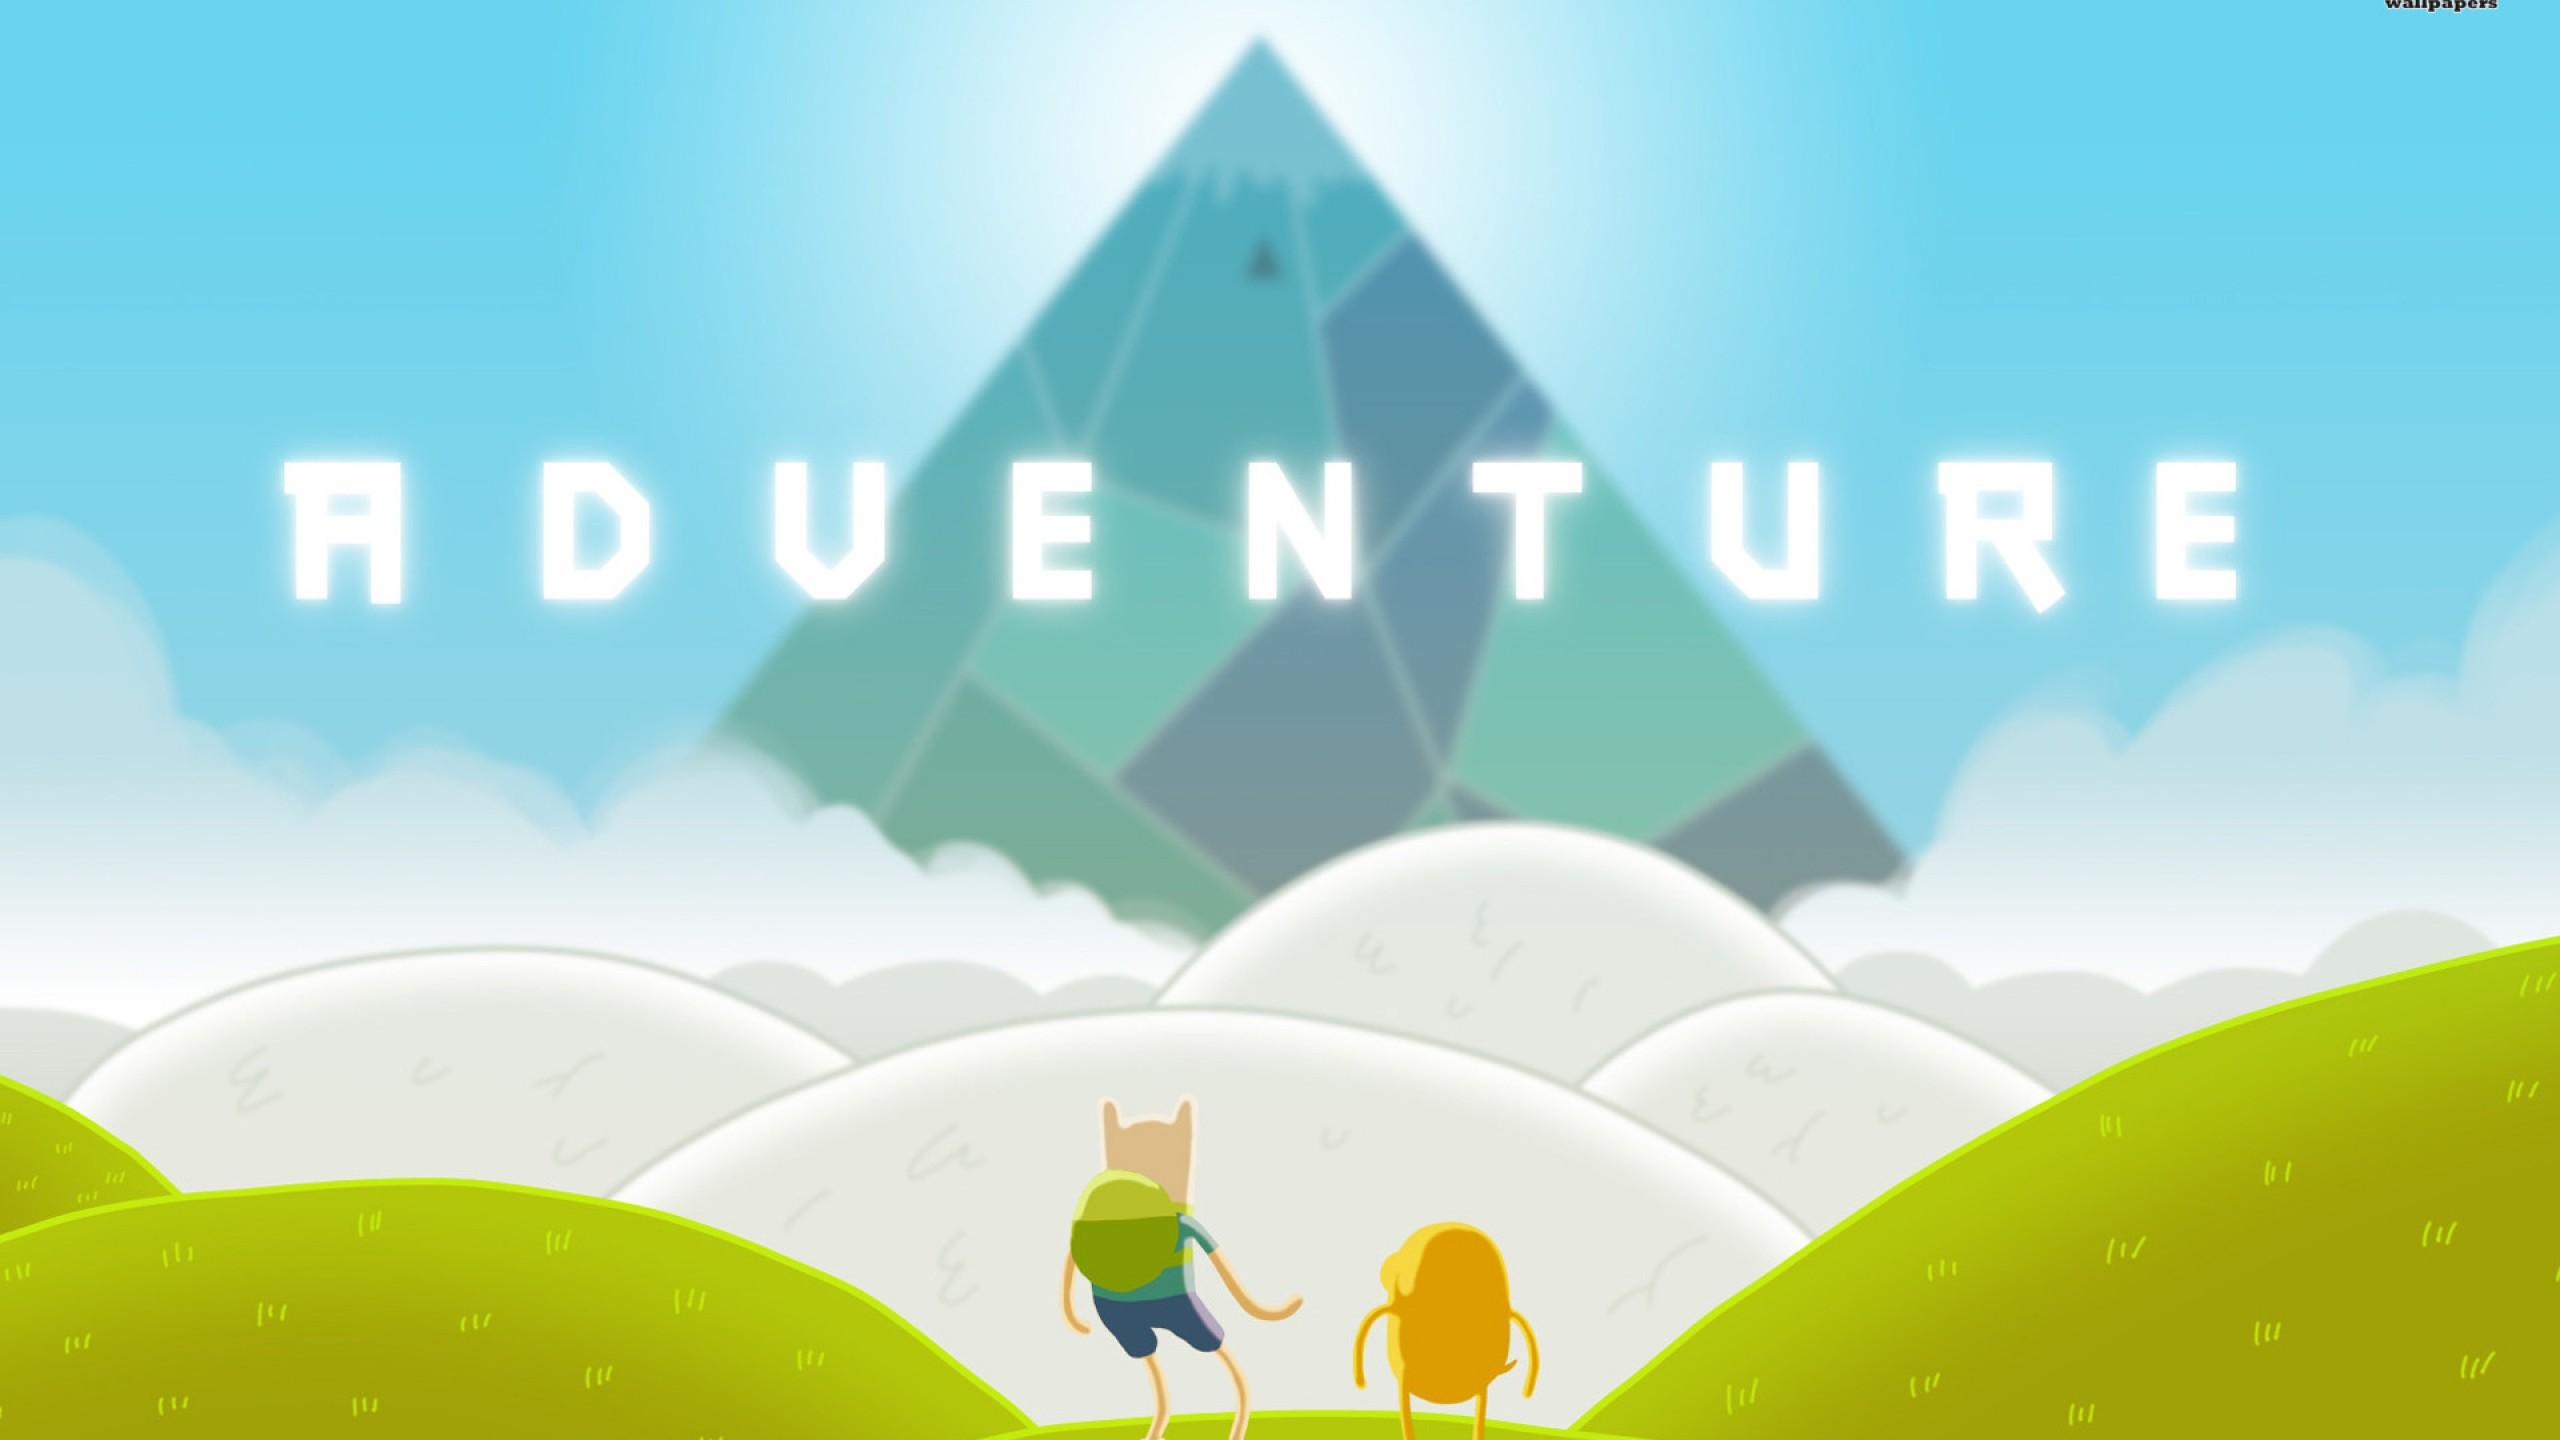 Adventure-Time-1920X1080-wallpaper-wpc5801976